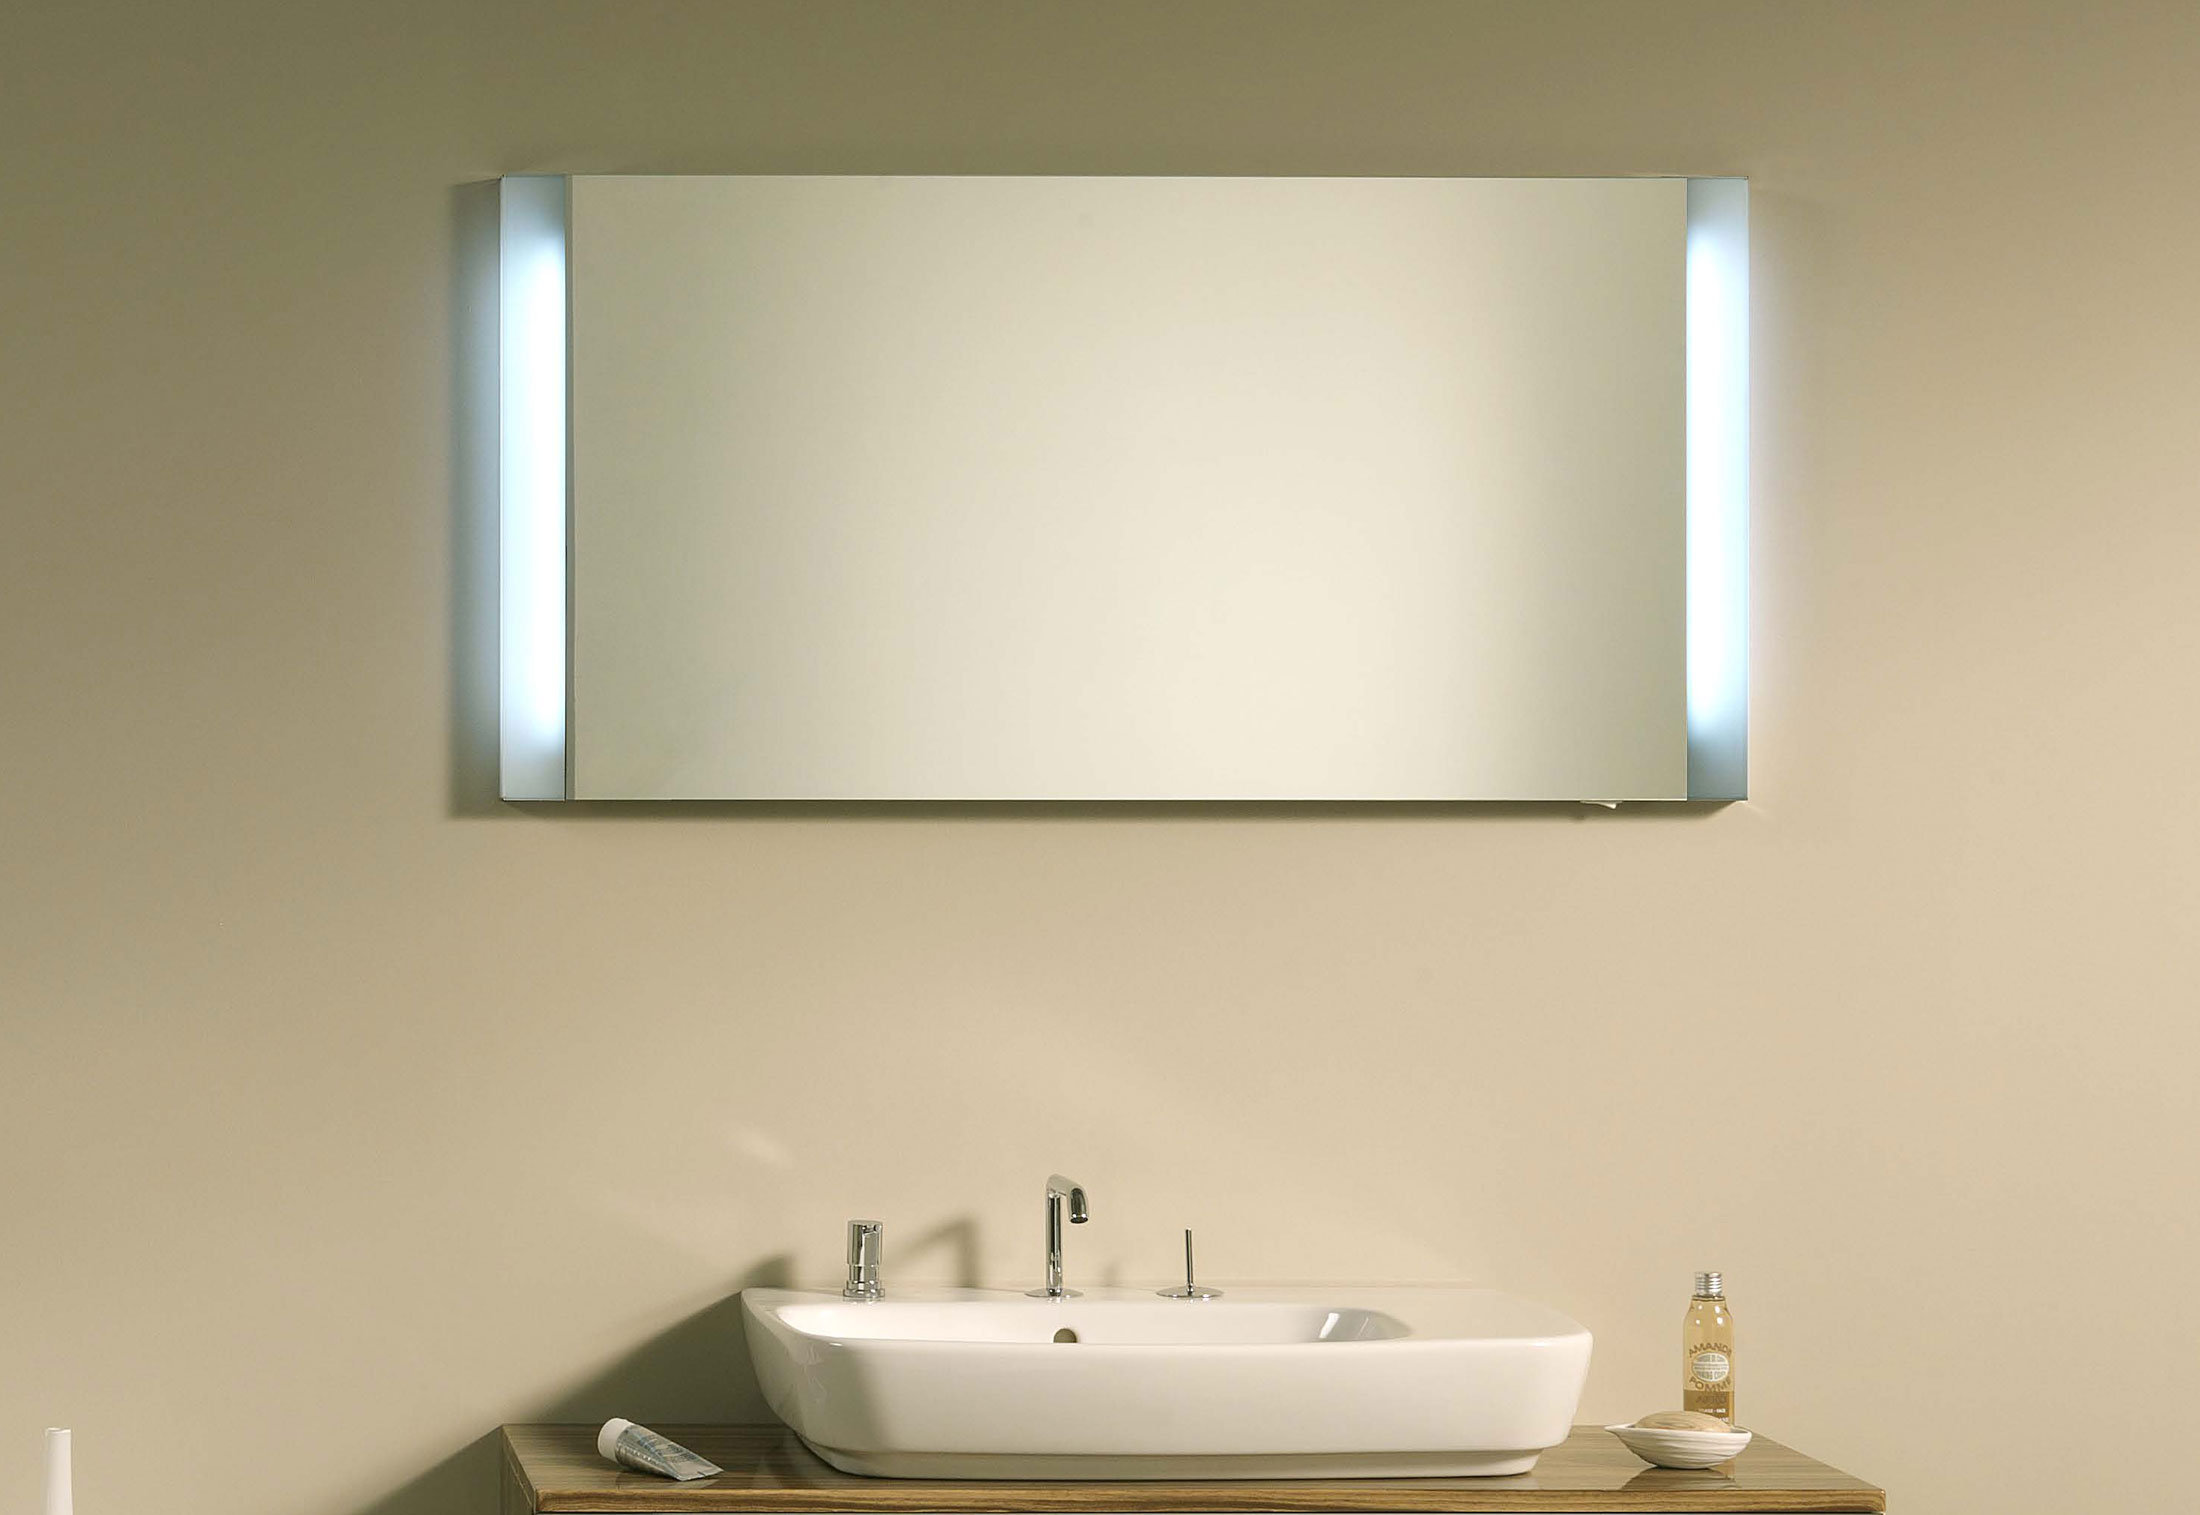 Shift wall mirror and mirror cabinet by VitrA Bathroom | STYLEPARK